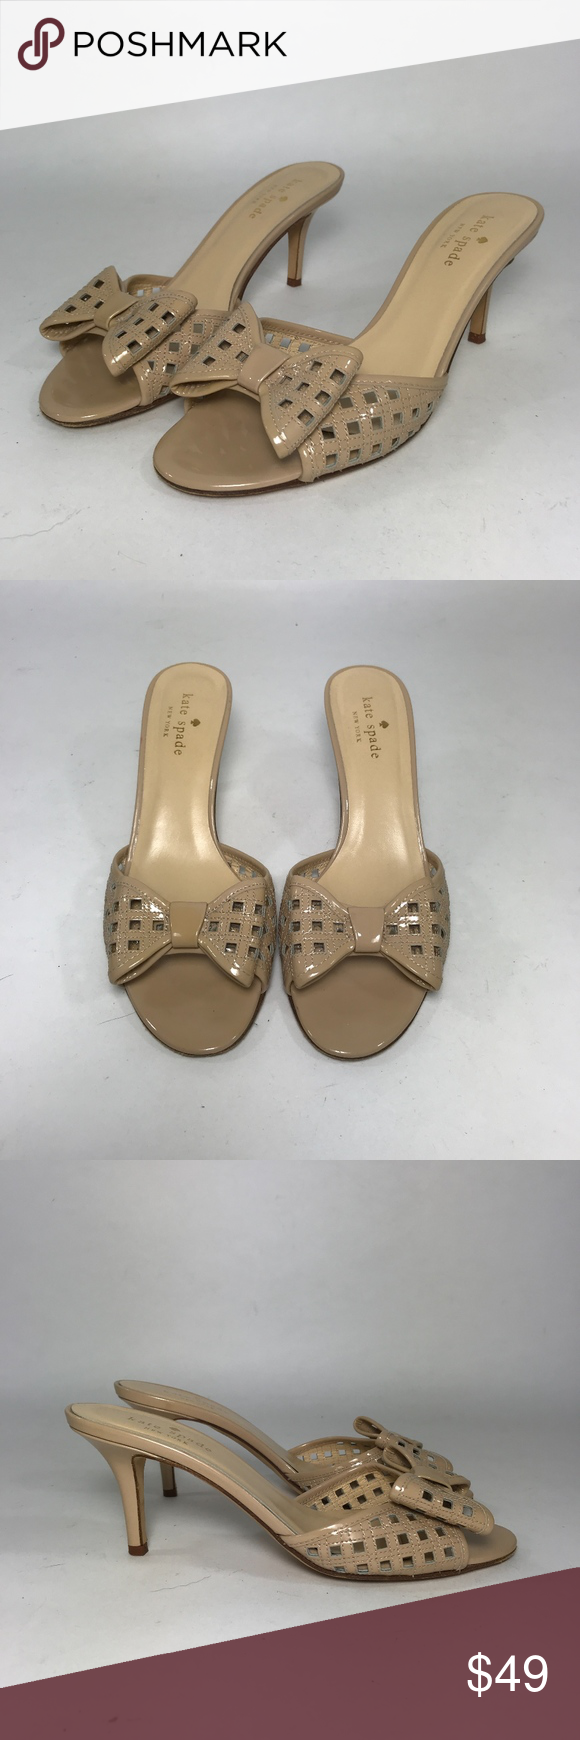 Kate Spade Beige Pantent Leather Bow Sandals Sz7.5 Website - WWW.THECHICAGOCONSIGNMENT.COM  Instagram - @CHICAGOCONSIGNMENT  Condition -VERY GOOD  Brand -KATE SPADE  SKU -469-AIS  Retail Price -$299   Size -7.5  Fit -REGULAR  Material -PATENT LEATHER  Heel Height3  Color -BEIGE  Stretch -  Ankle -   Add'l Info. -  Note - NO TRANSACTIONS OFF POSH.  WE BUNDLE DISCOUNT AND ACCEPT REASONABLE OFFERS.  THANK YOU!!! kate spade Shoes Sandals